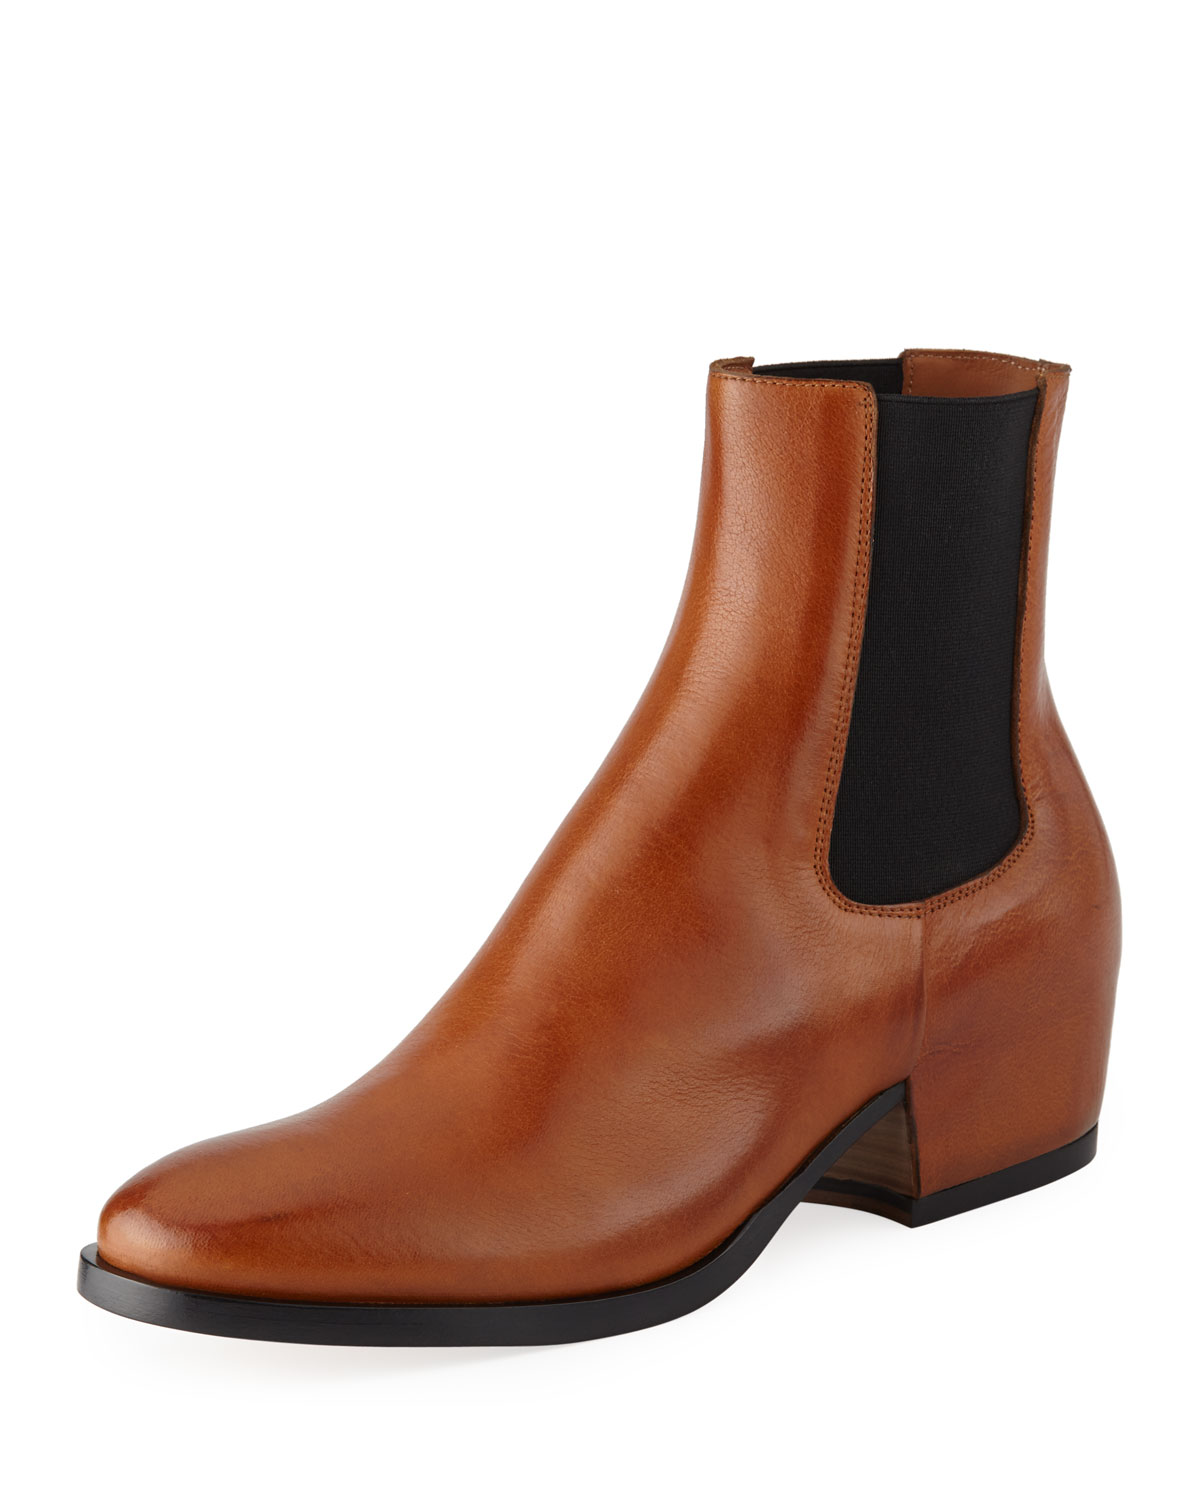 c1adc1036c11 Givenchy Men s Leather Chelsea Boot